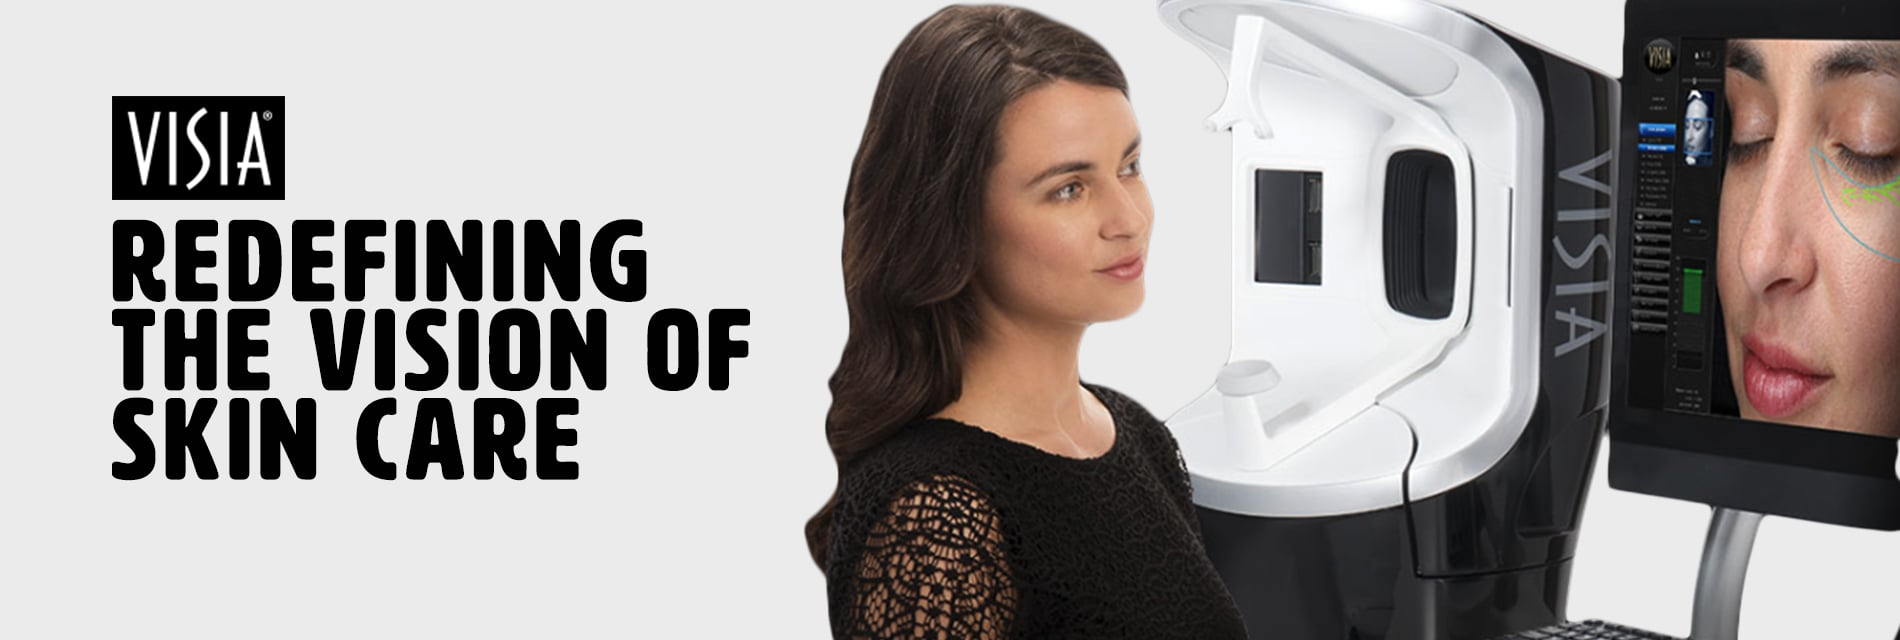 Banner image of Aesthetic Service Imaging visia